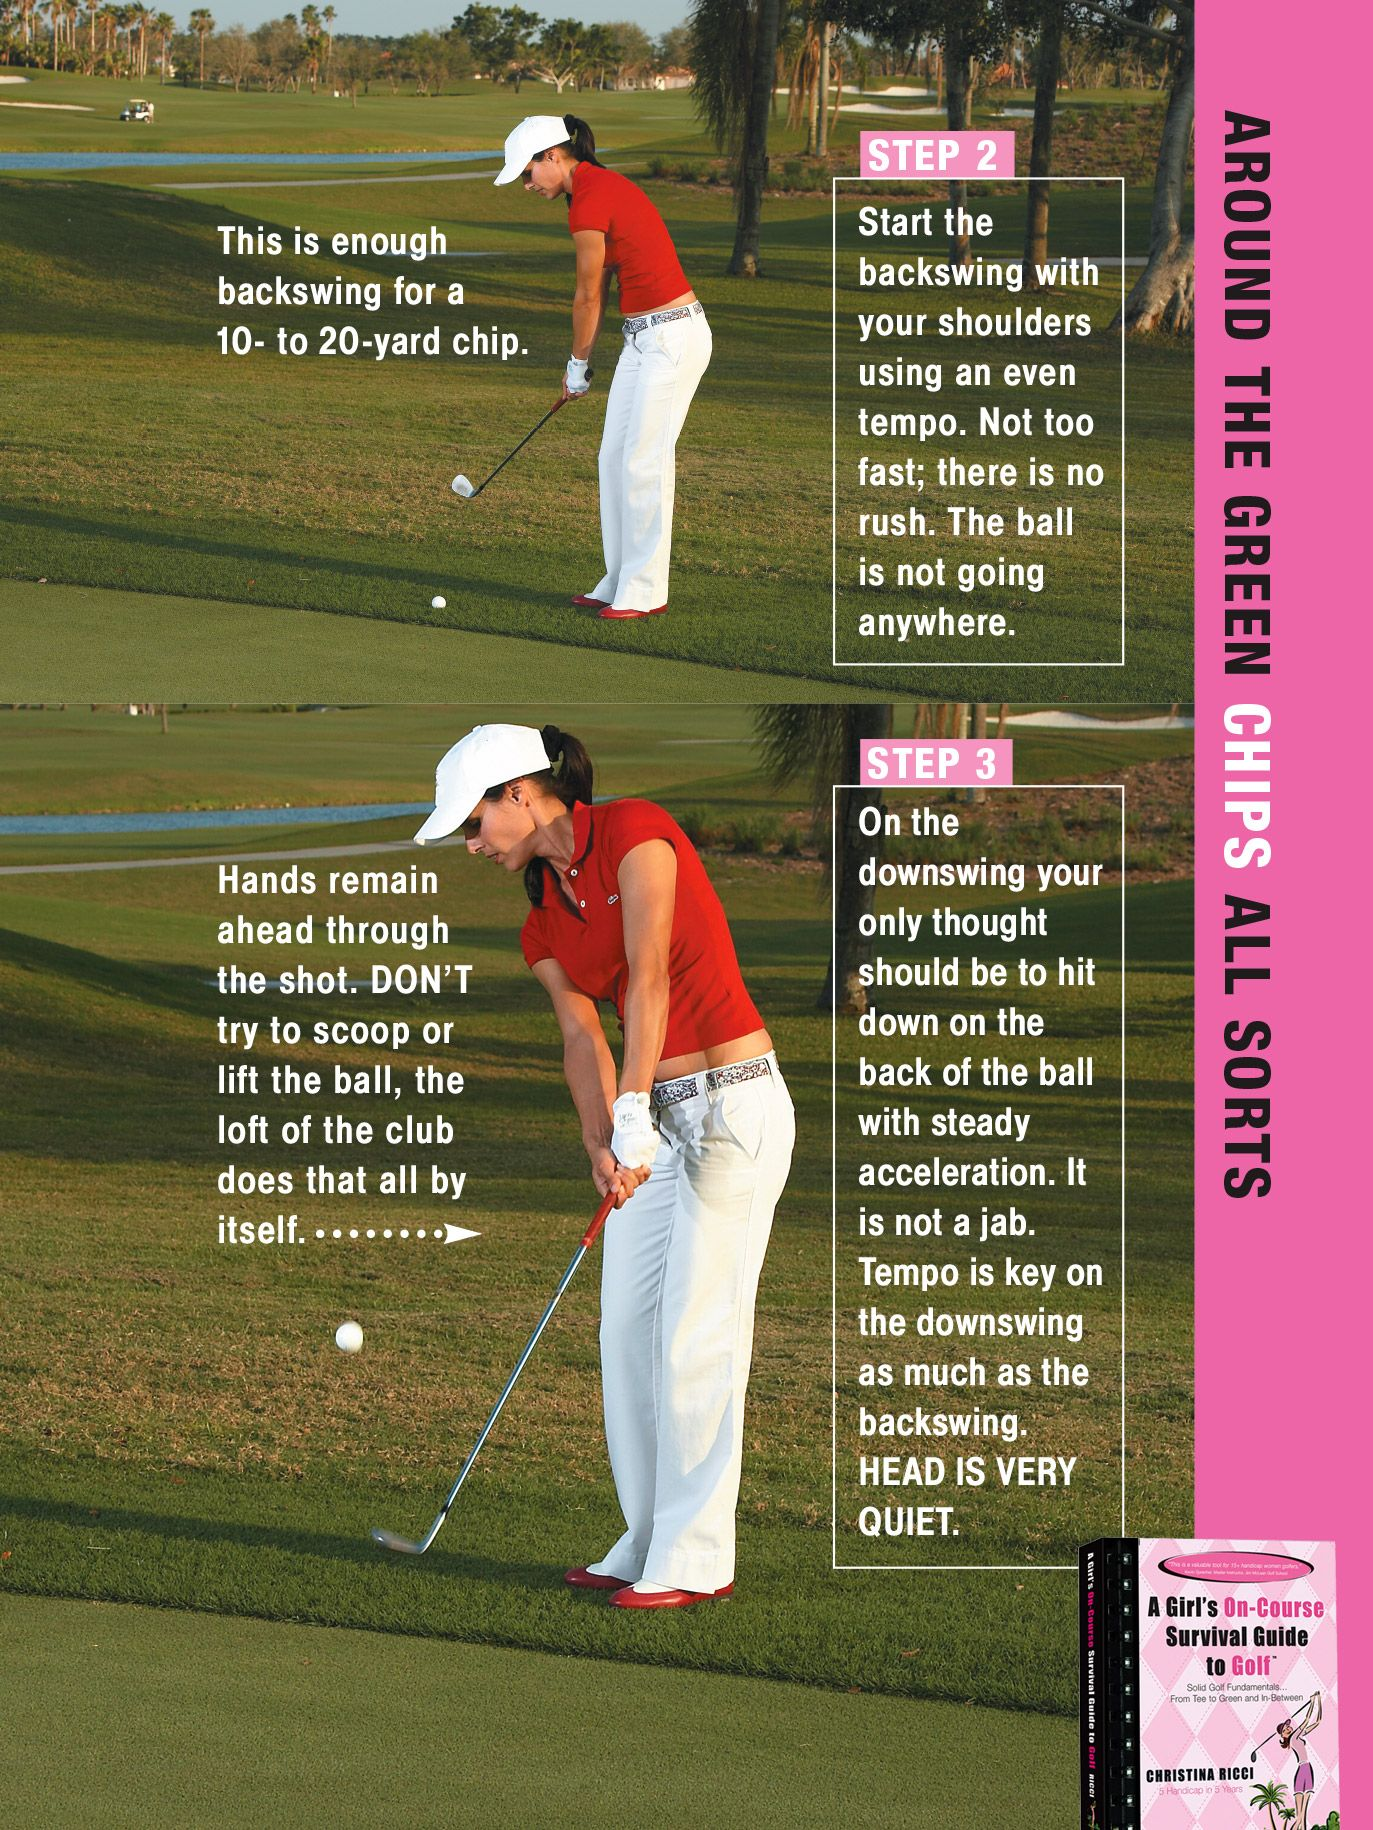 Hands to the hole with club head low s the secret to